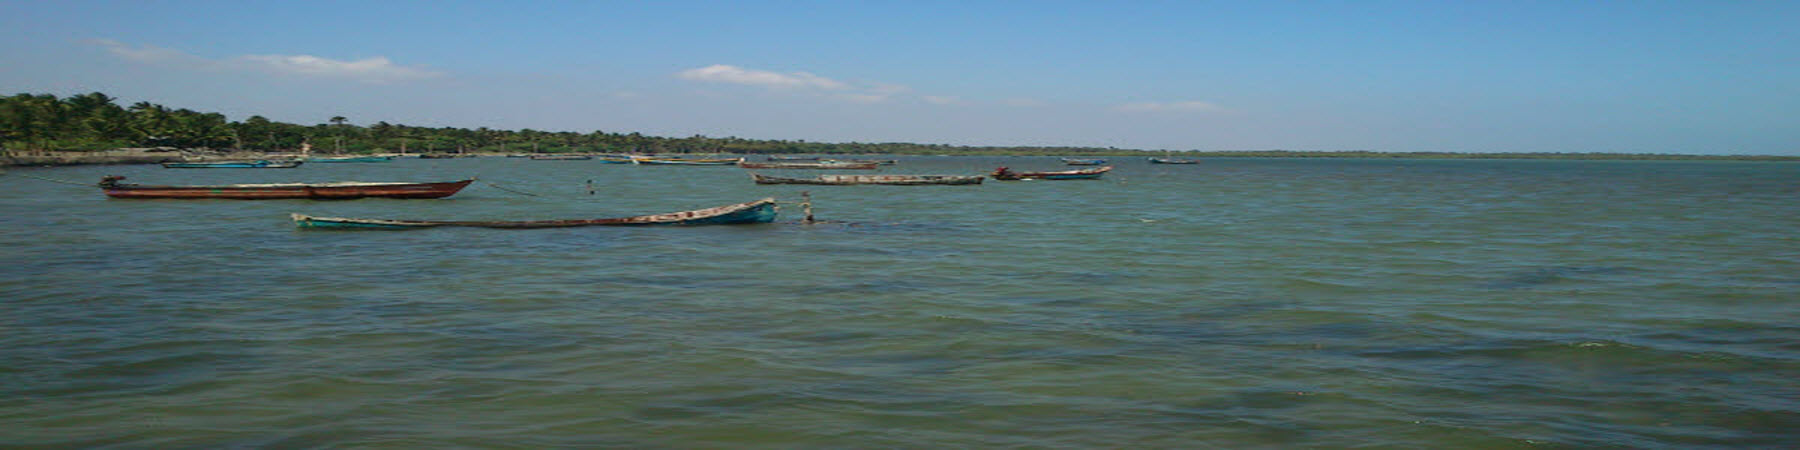 Devipattinam - Fishing boats